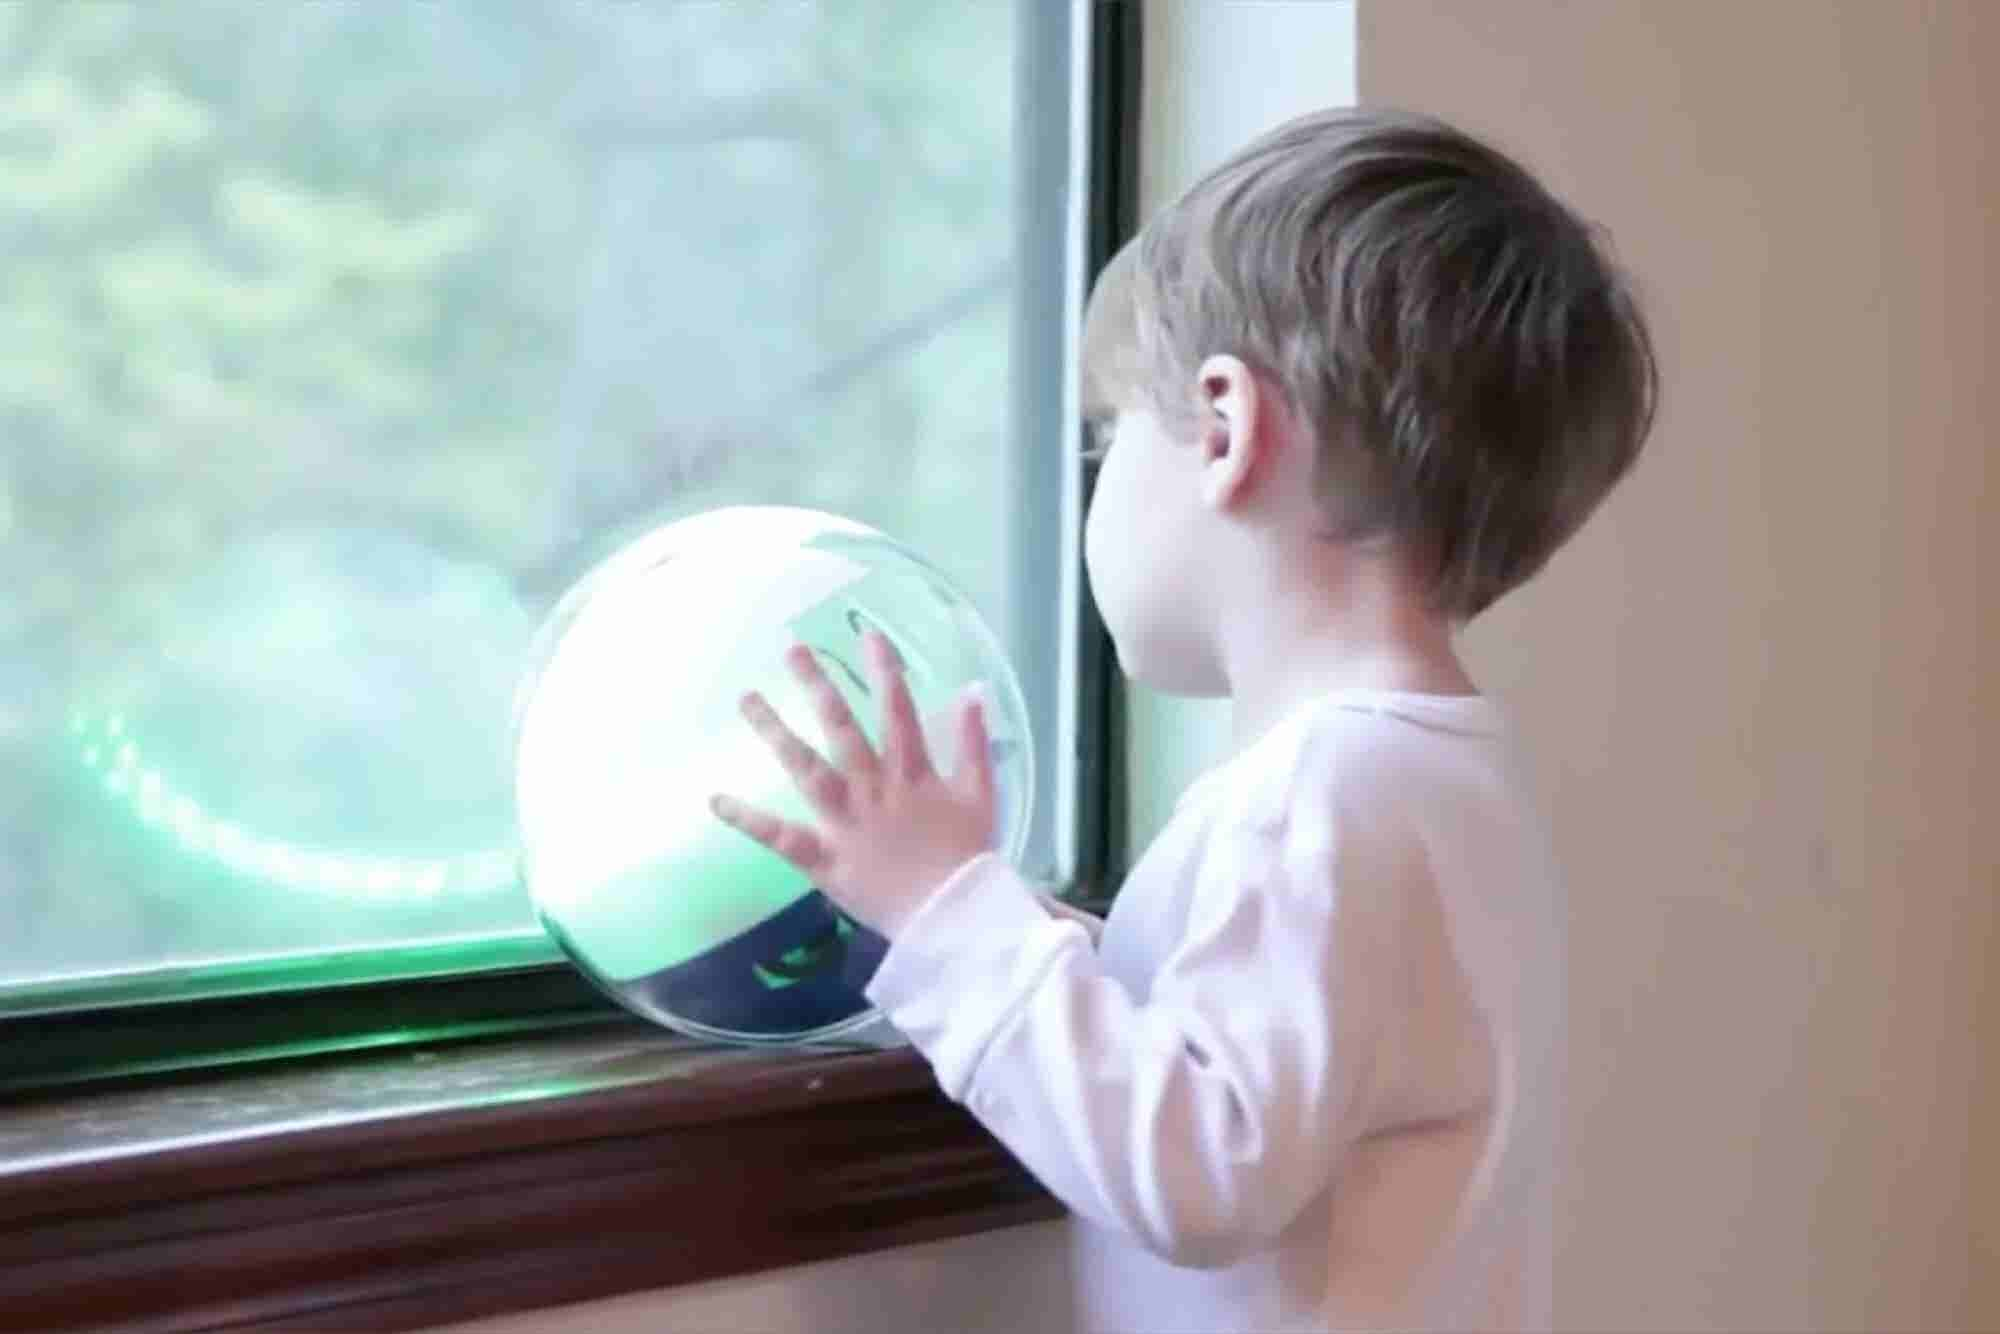 This New Robot Will Boost Your Child's Emotional and Social Skills